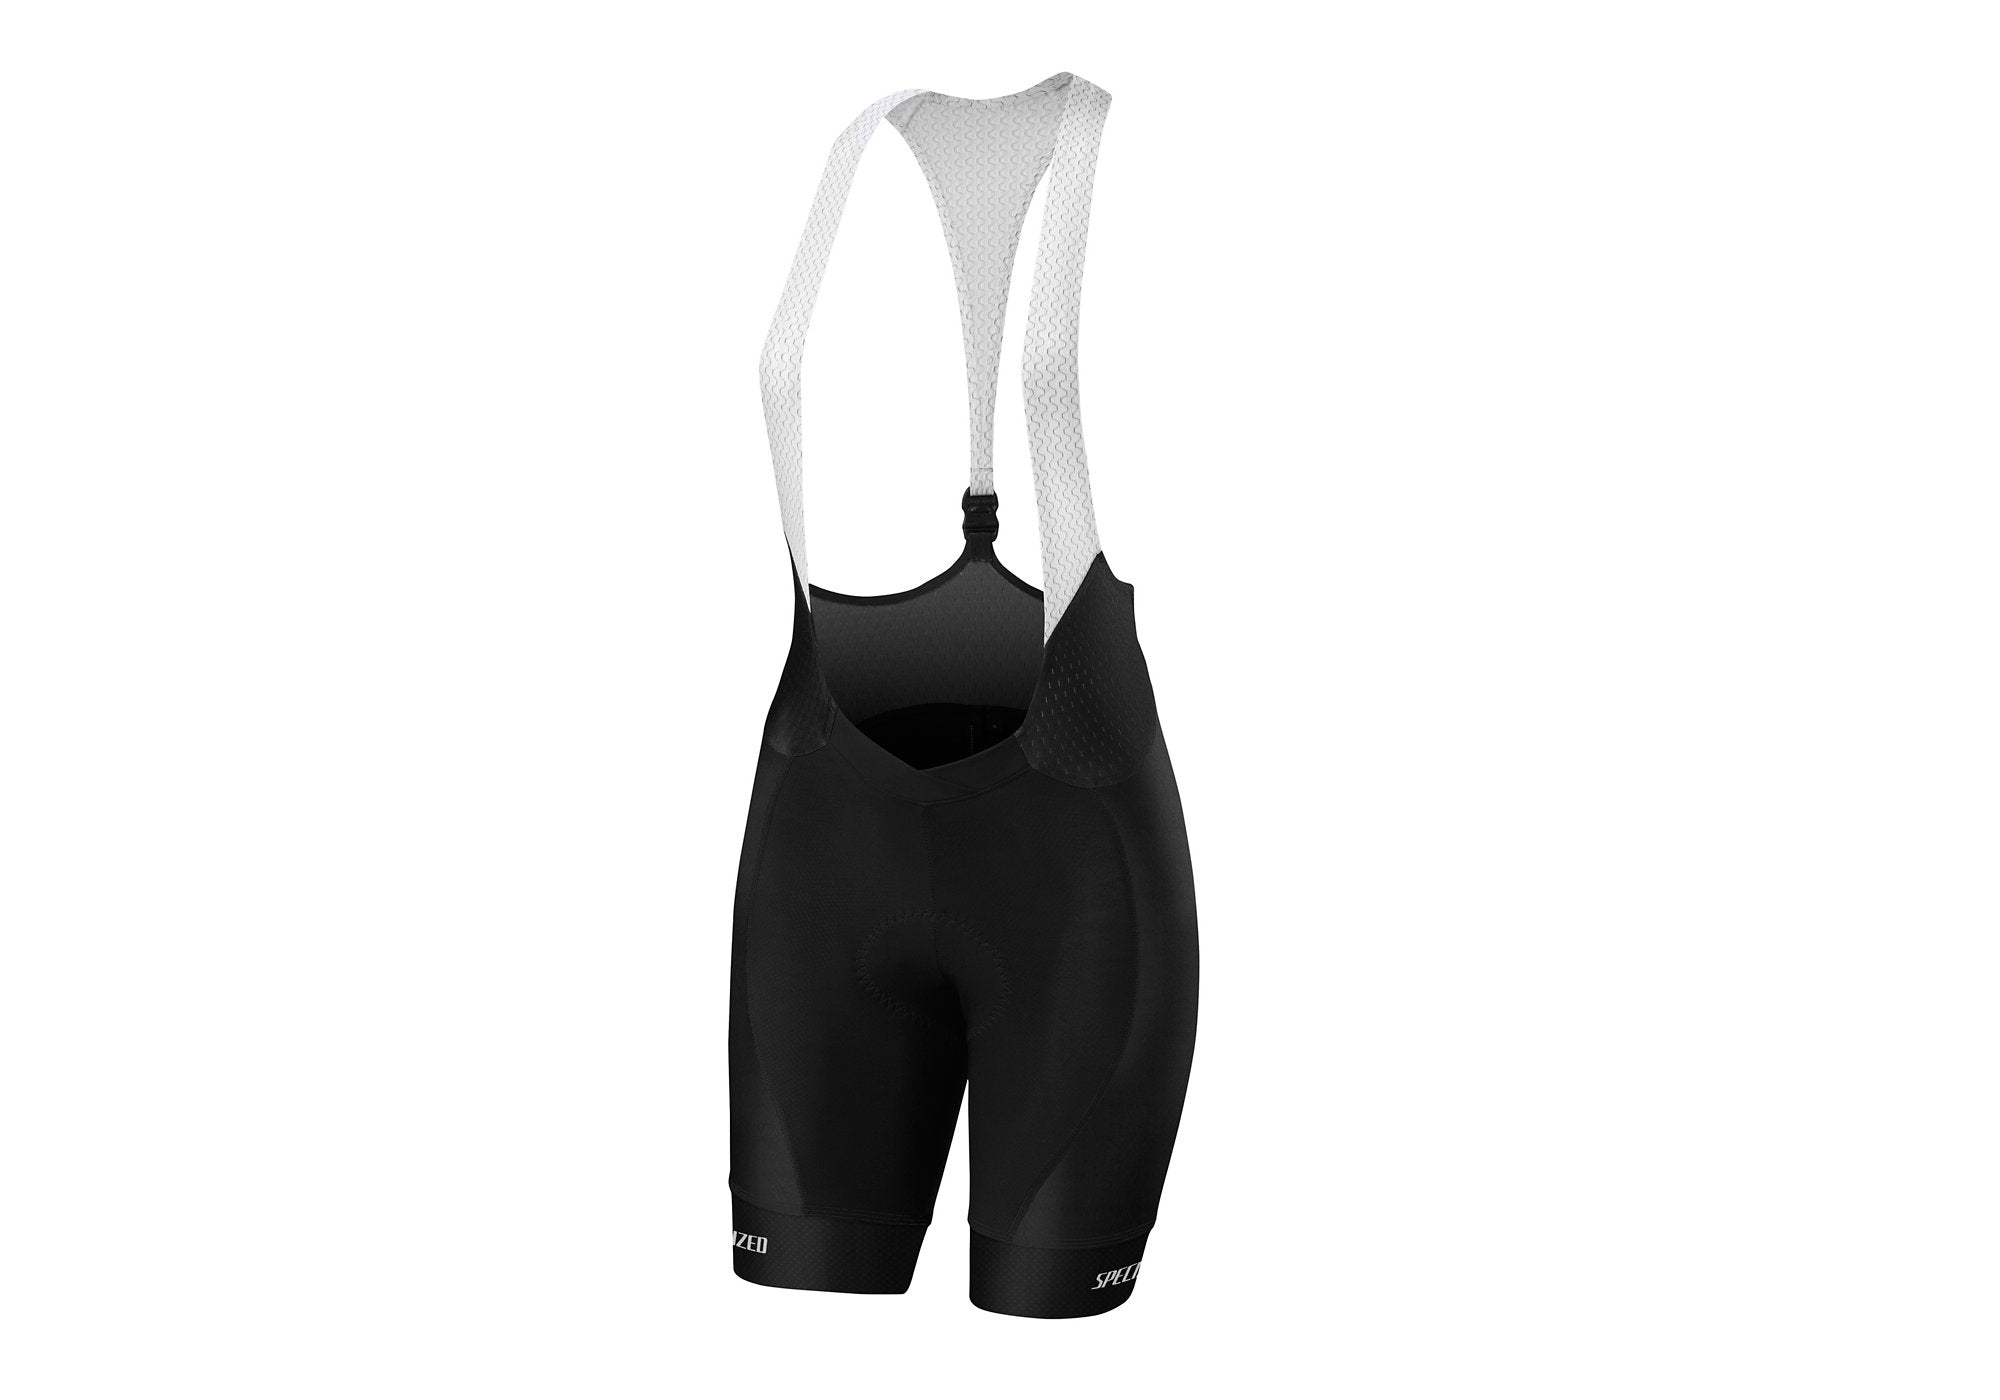 Specialized SL Pro Bib Shorts Womens Black